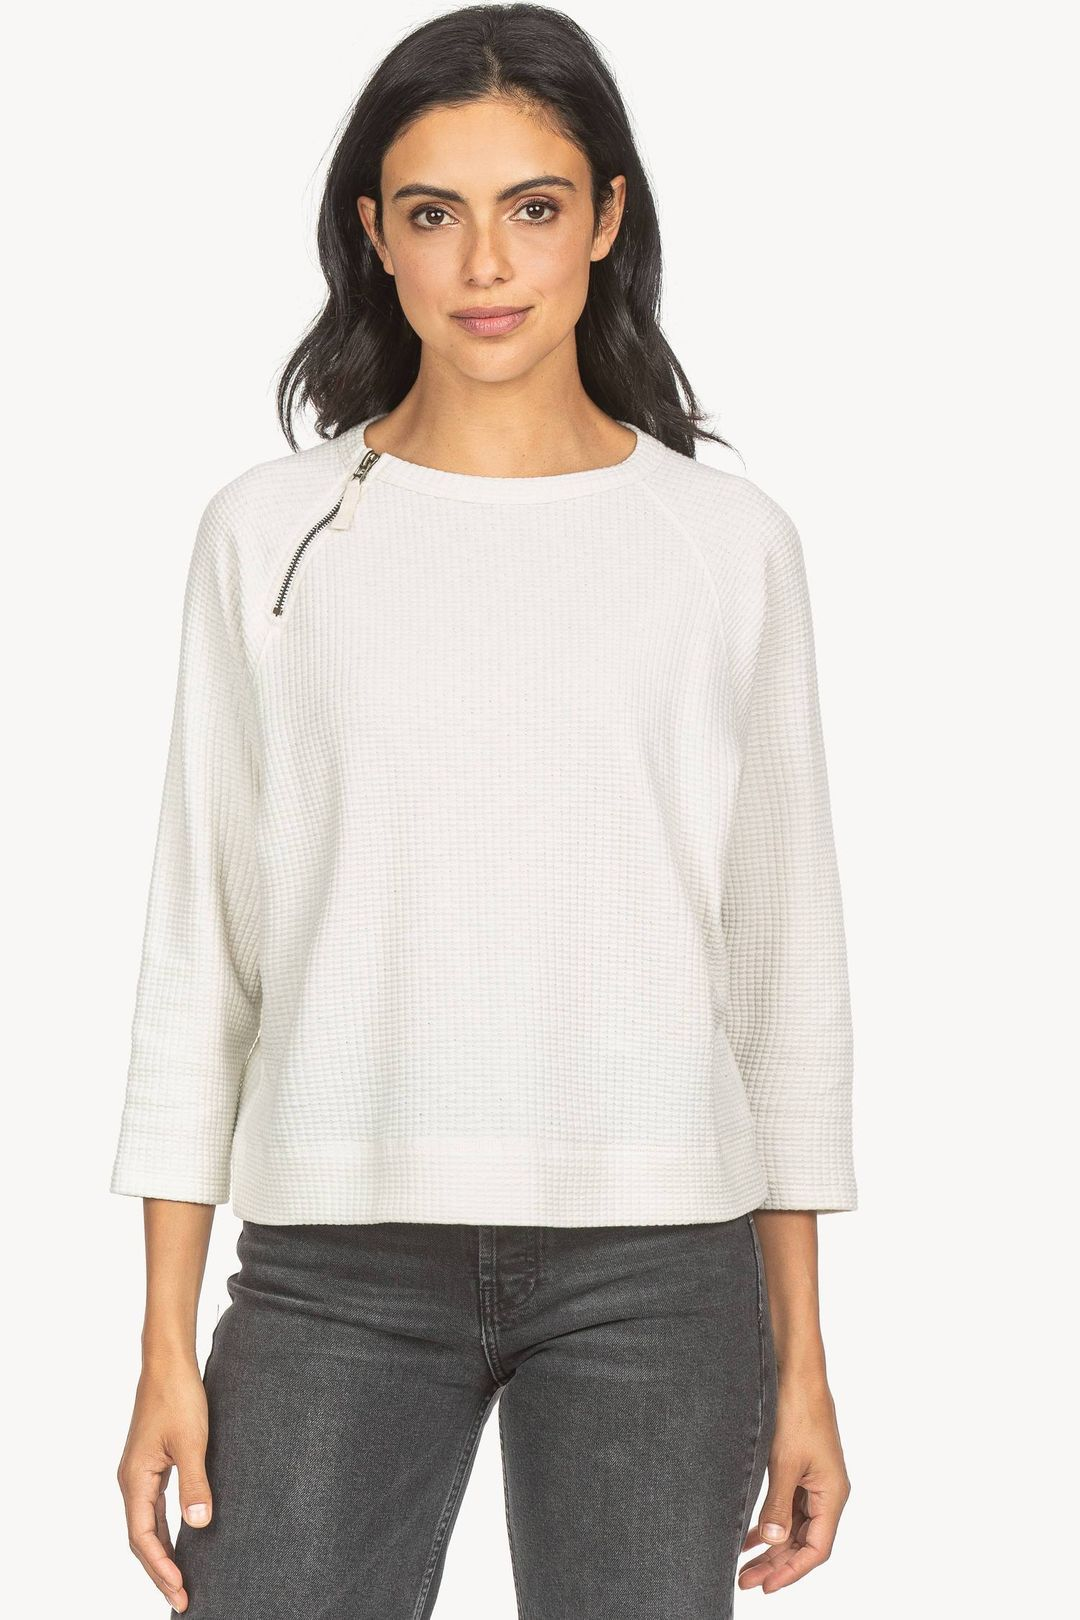 Zipper Neck Pullover Top